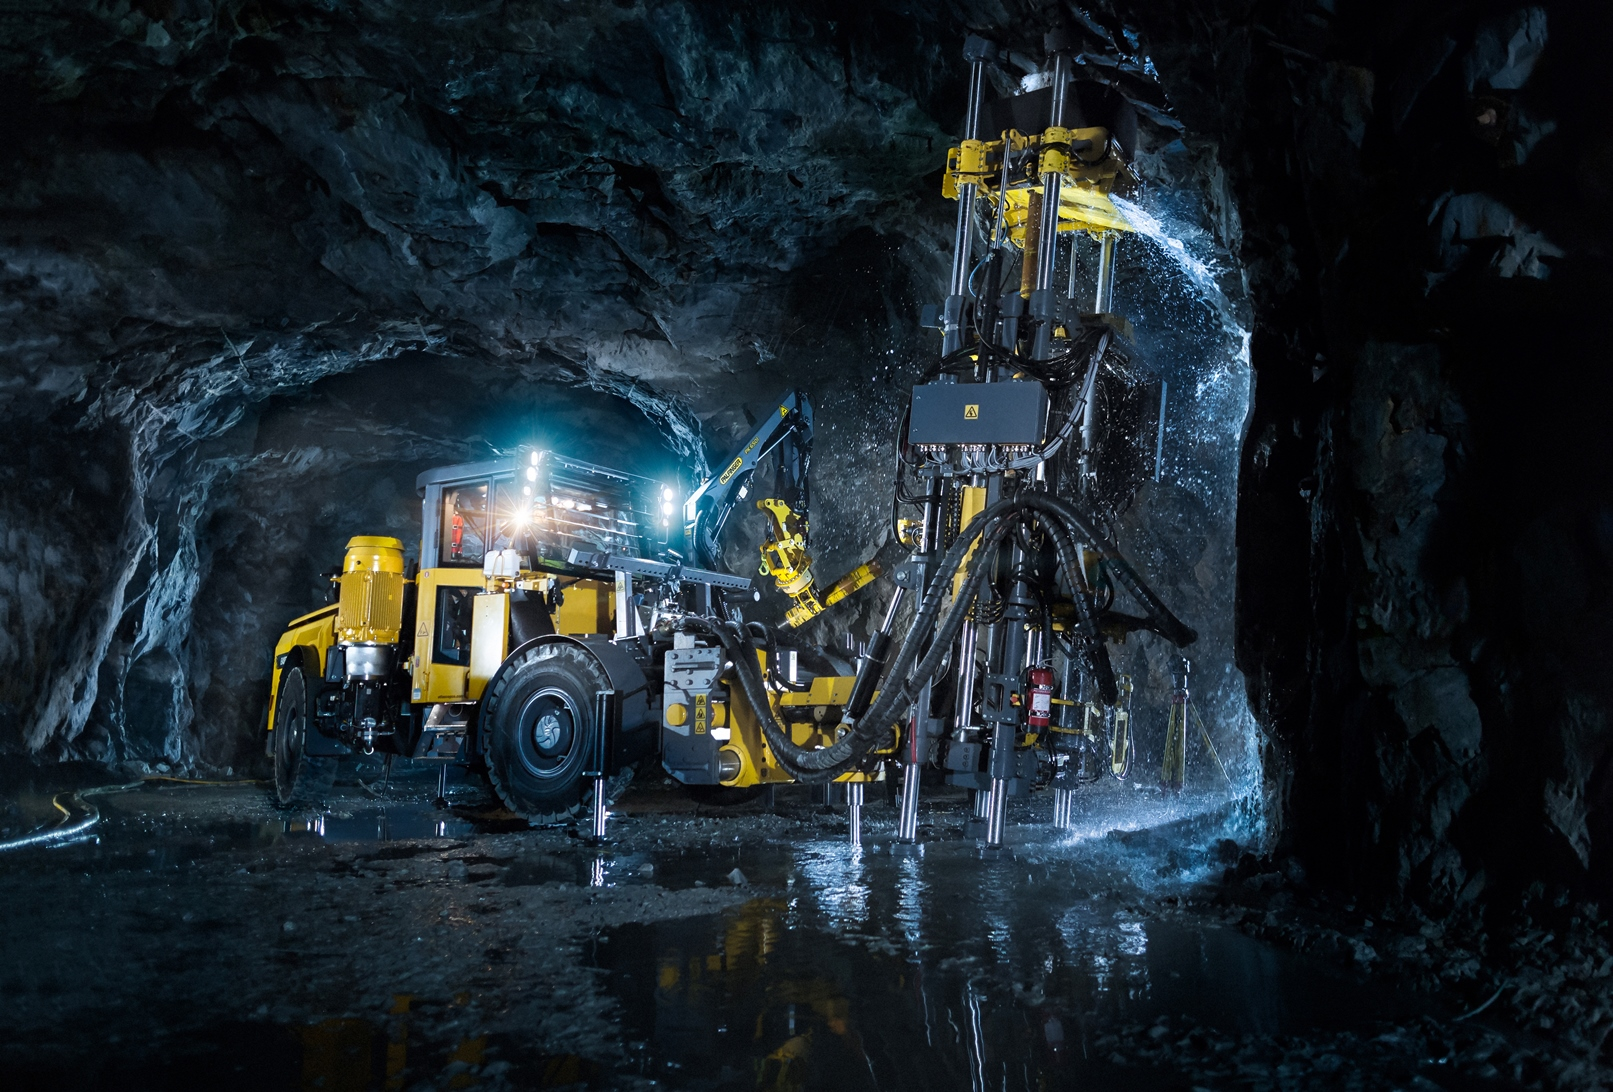 The Easer L is a mobile rig specifically designed to drill opening holes, or easer holes in mines. It can perform box hole boring, down-reaming and conventional raiseboring.